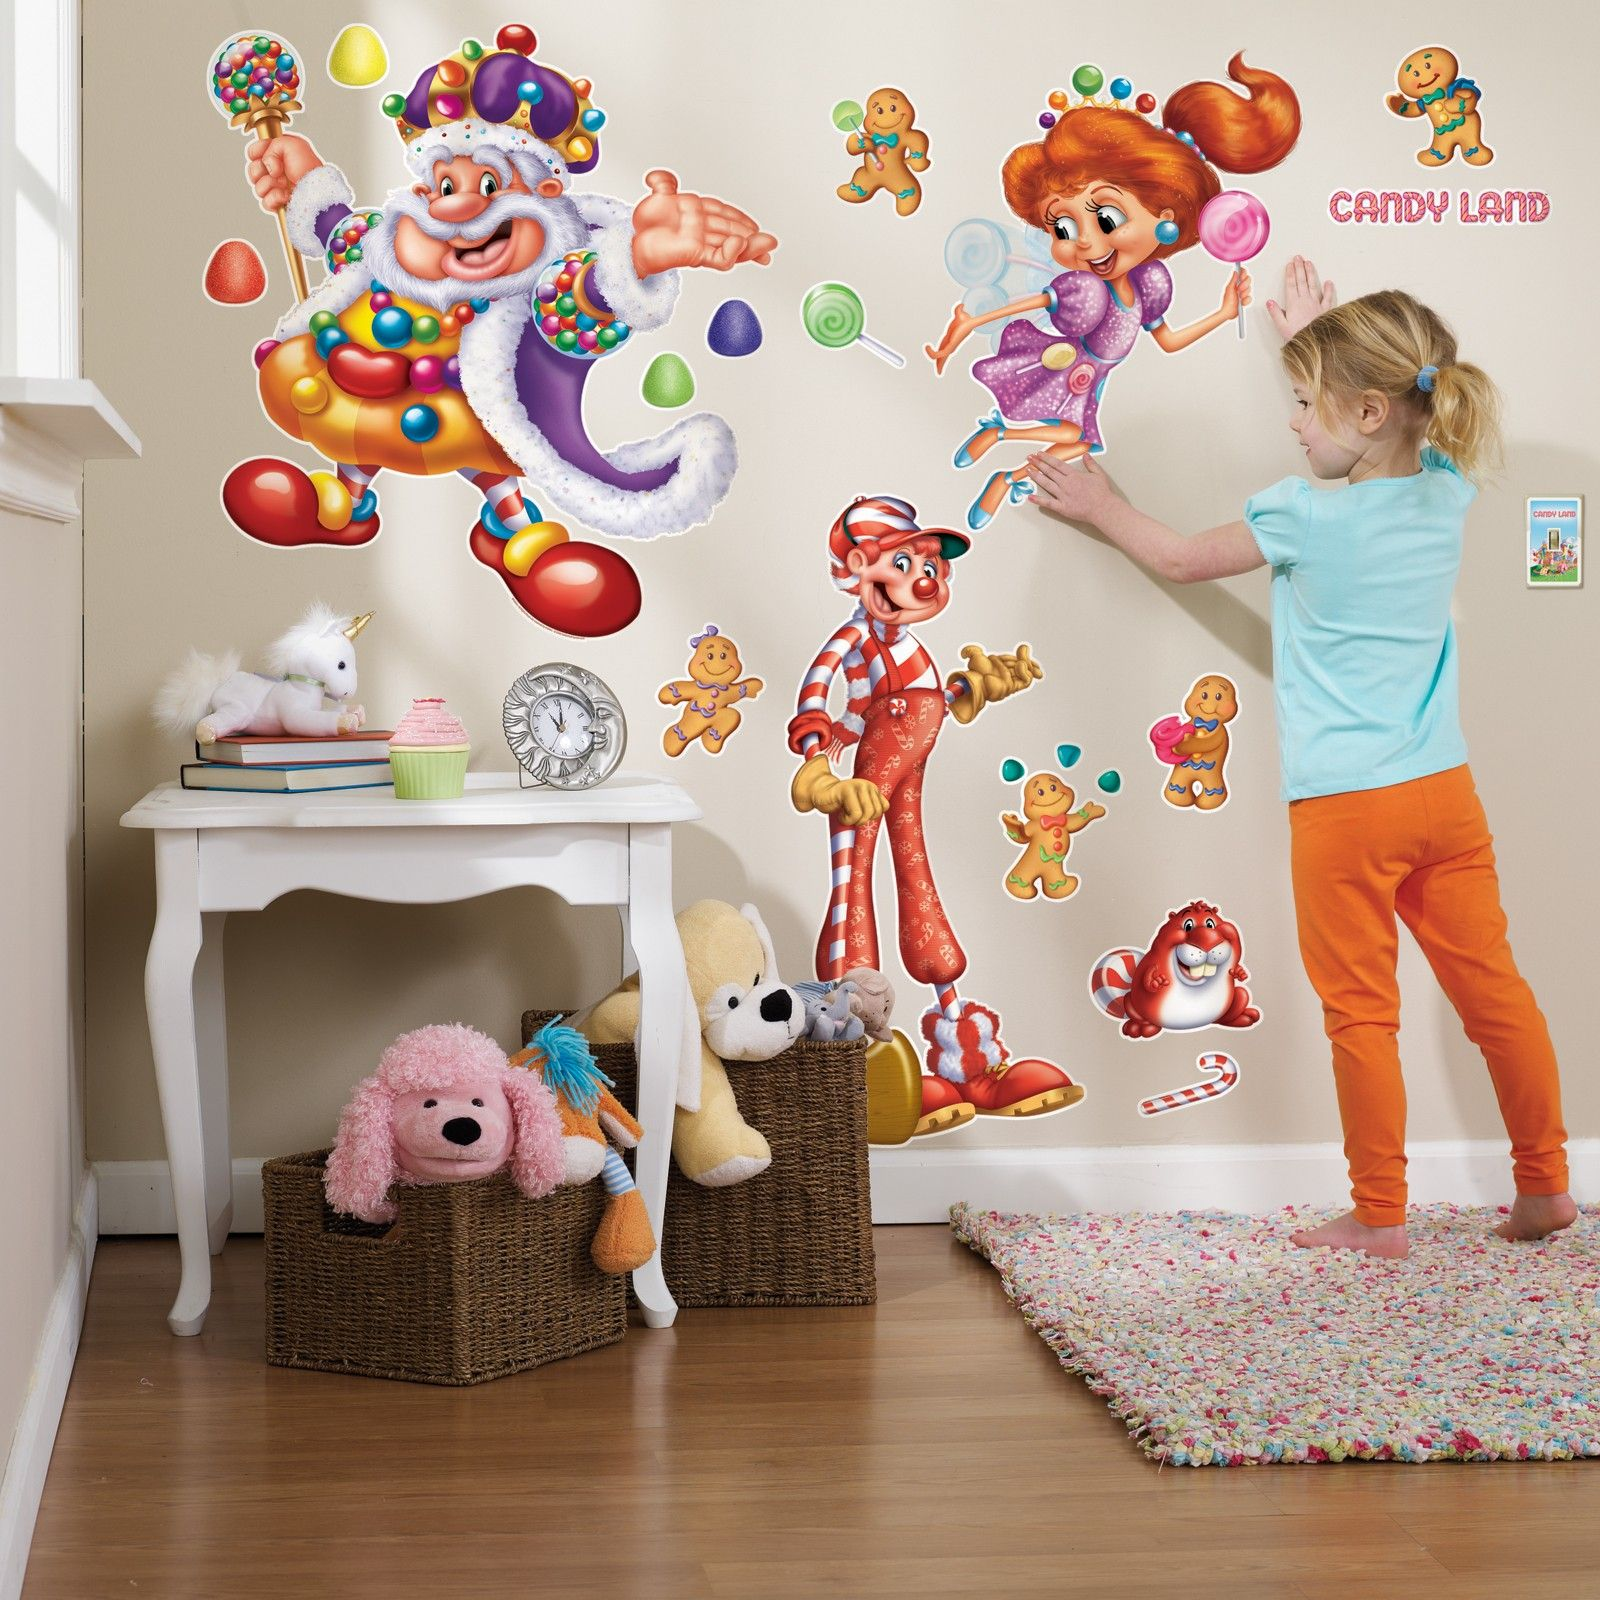 CandyLand Giant Wall Decals Candyland Wall decals and Candy land